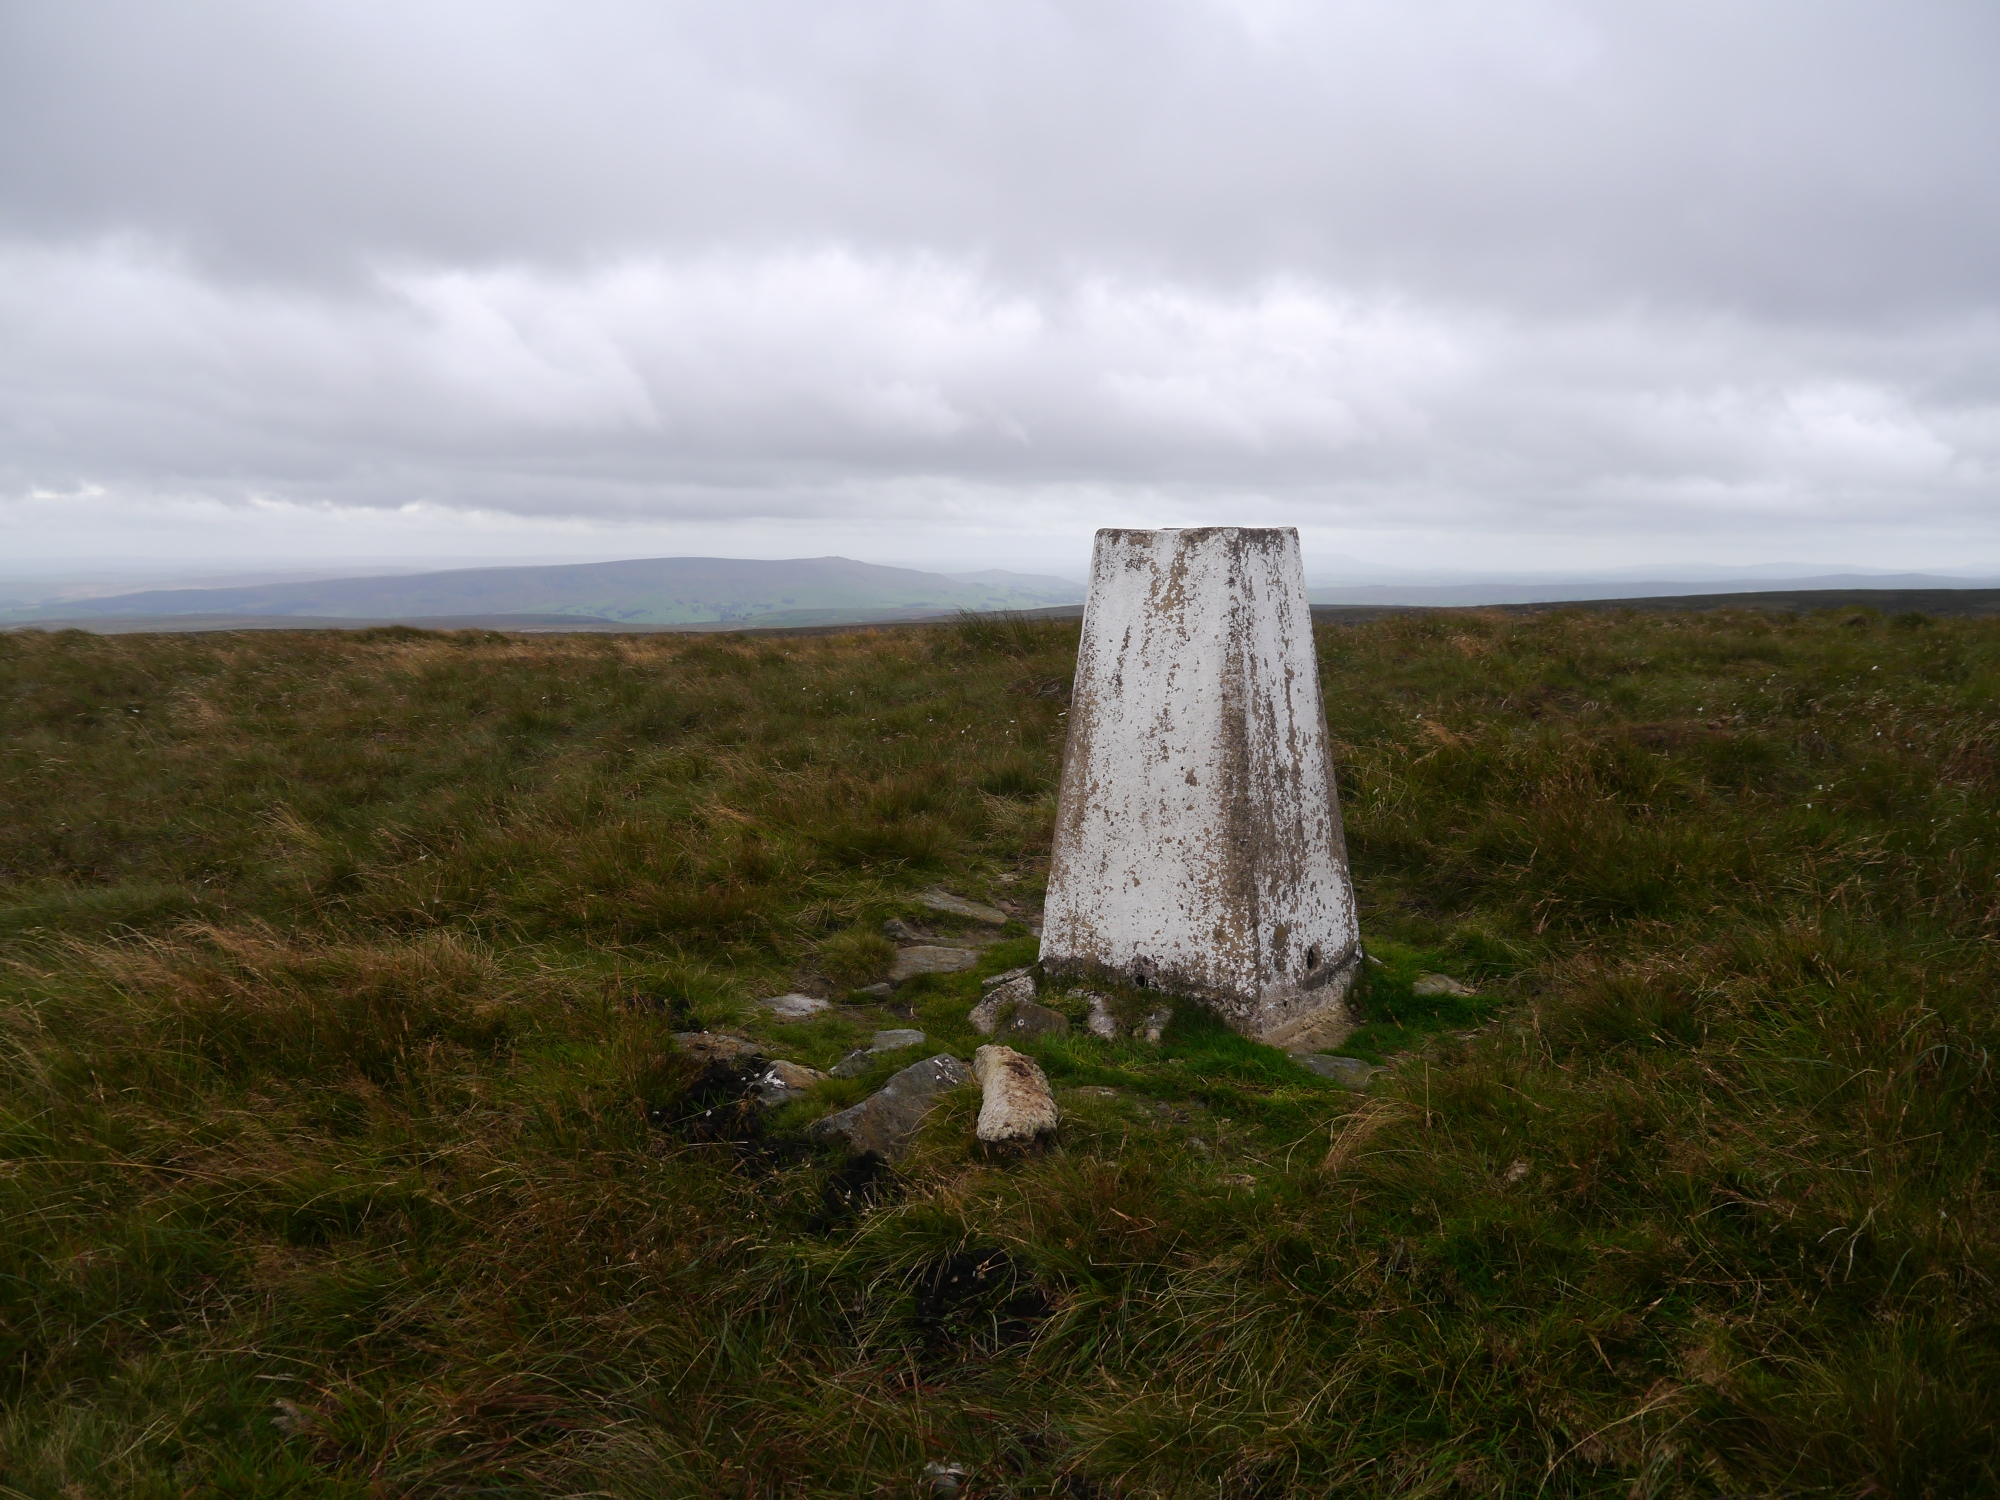 Meugher trig point